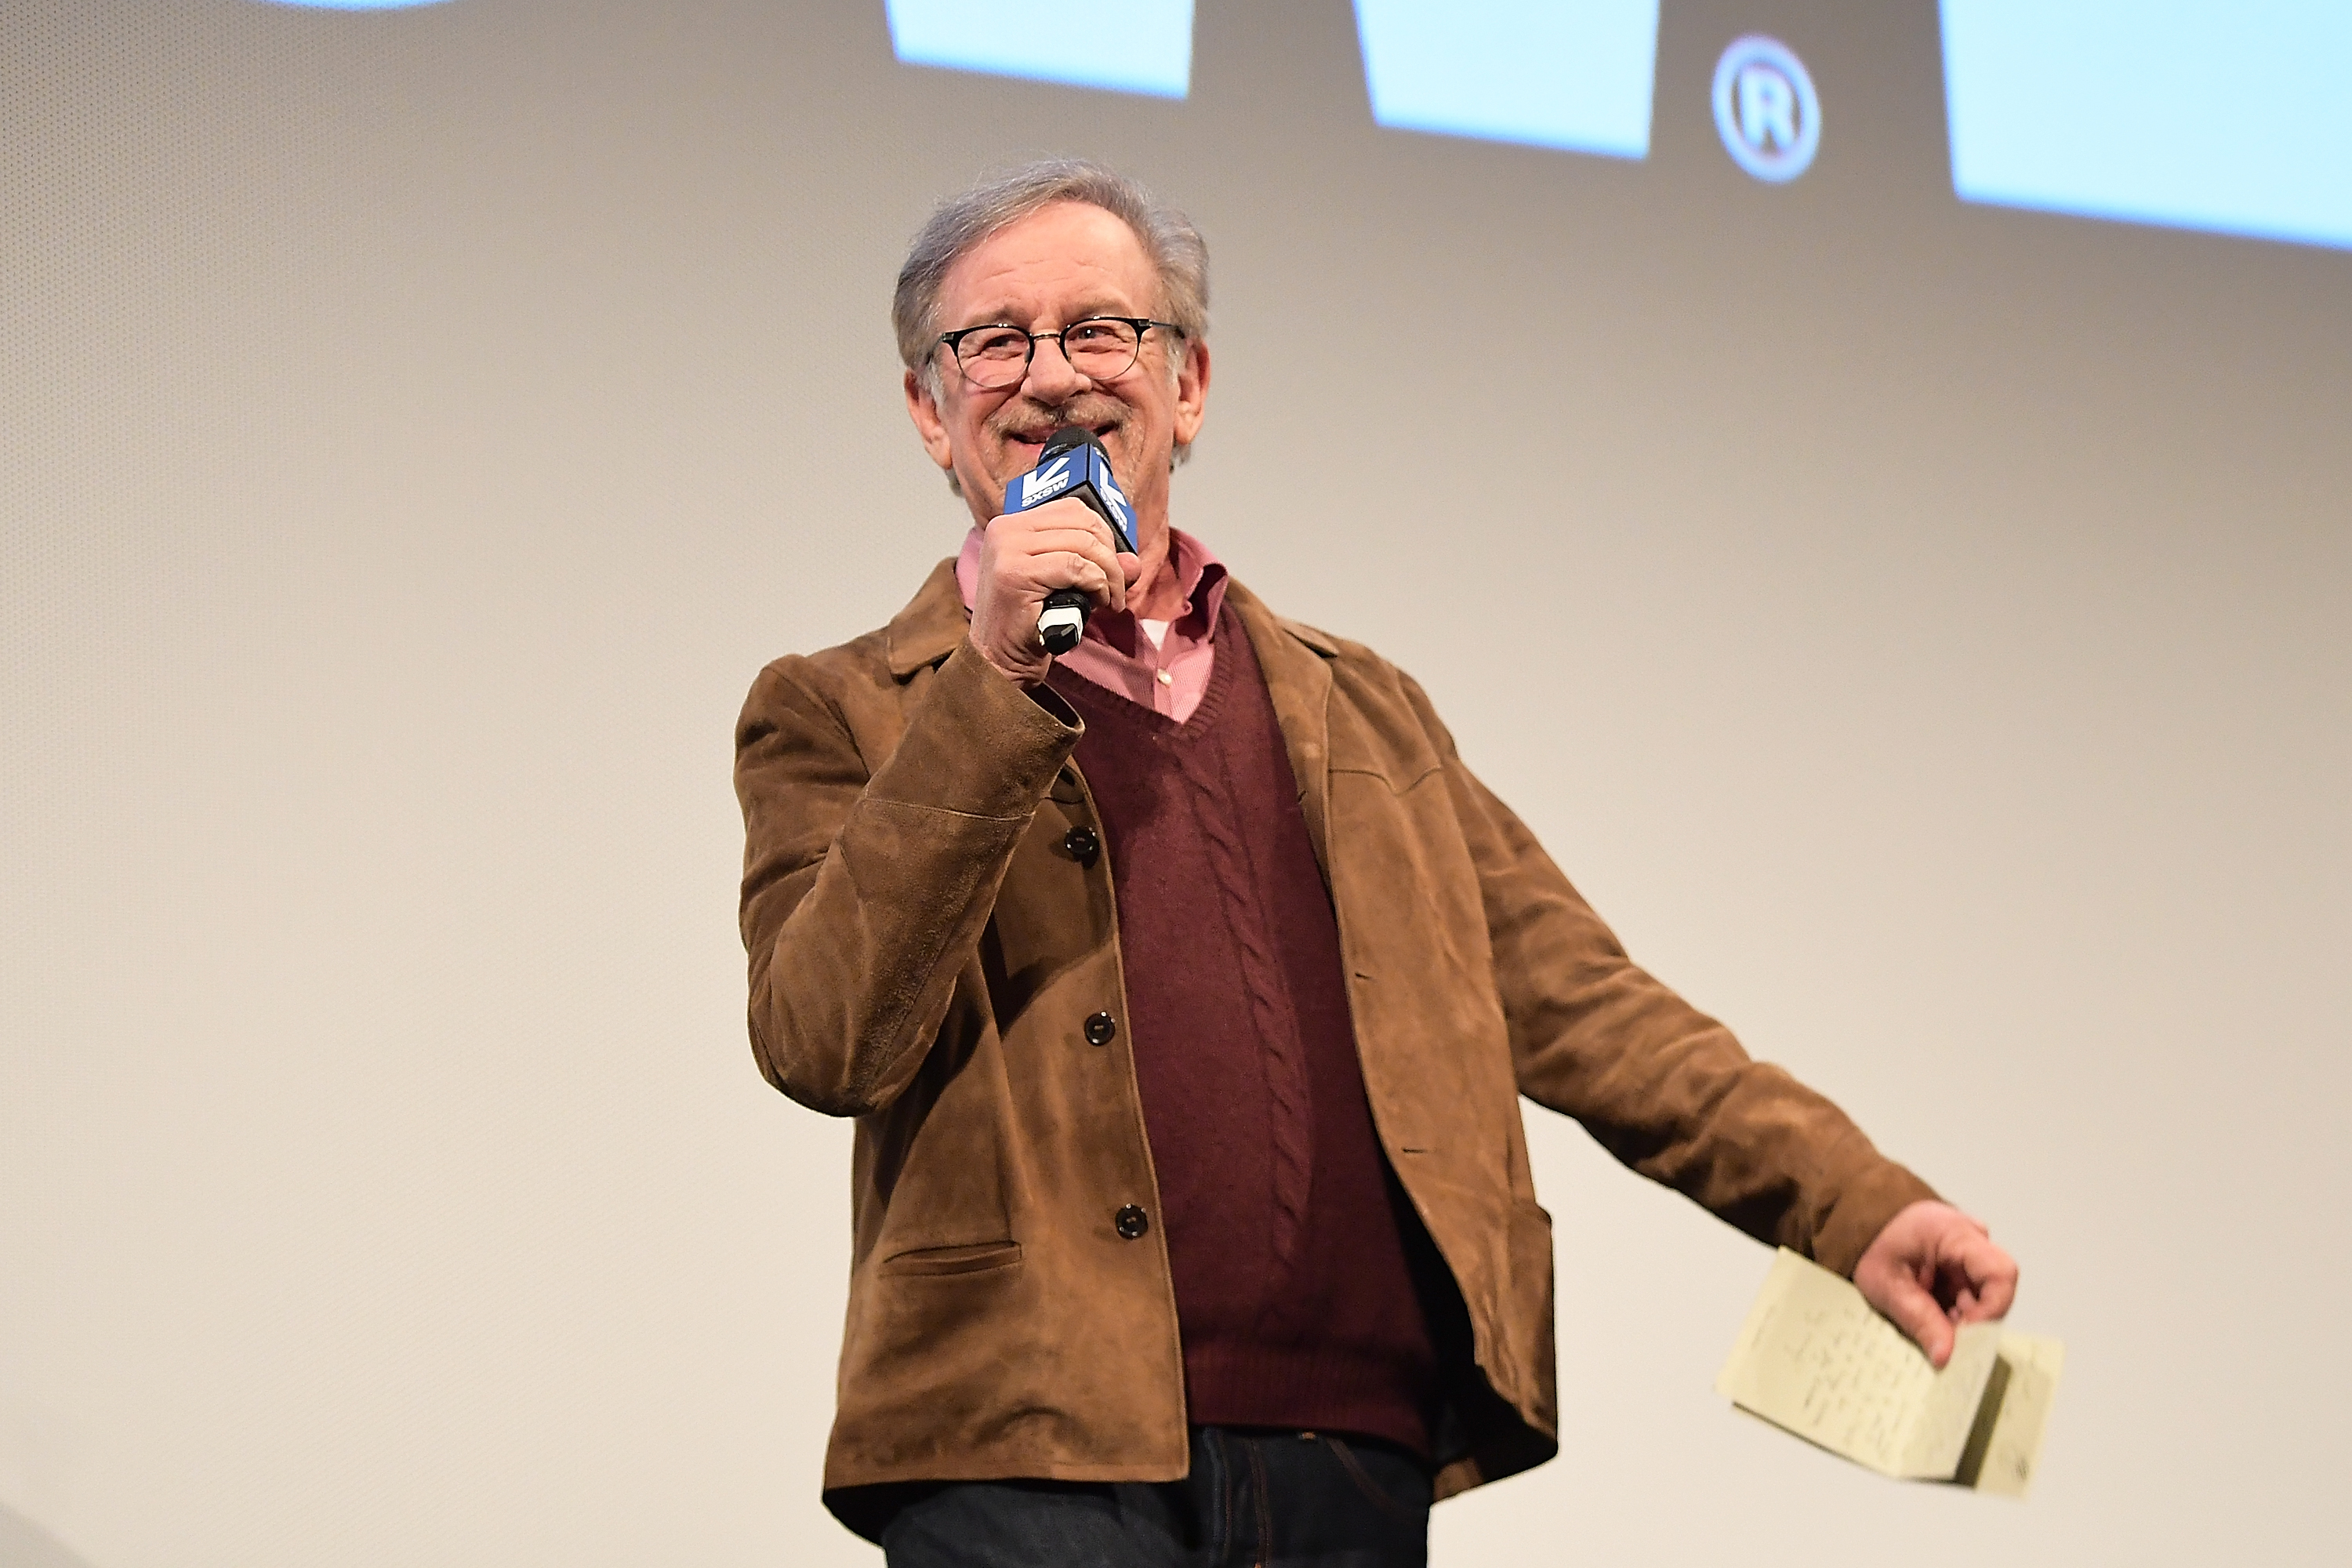 """Steven Spielberg attends """"Ready Player One"""" Premiere 2018 SXSW Conference and Festivals at Paramount Theatre on March 11, 2018 in Austin, Texas. (Photo by Matt Winkelmeyer/Getty Images for SXSW)"""